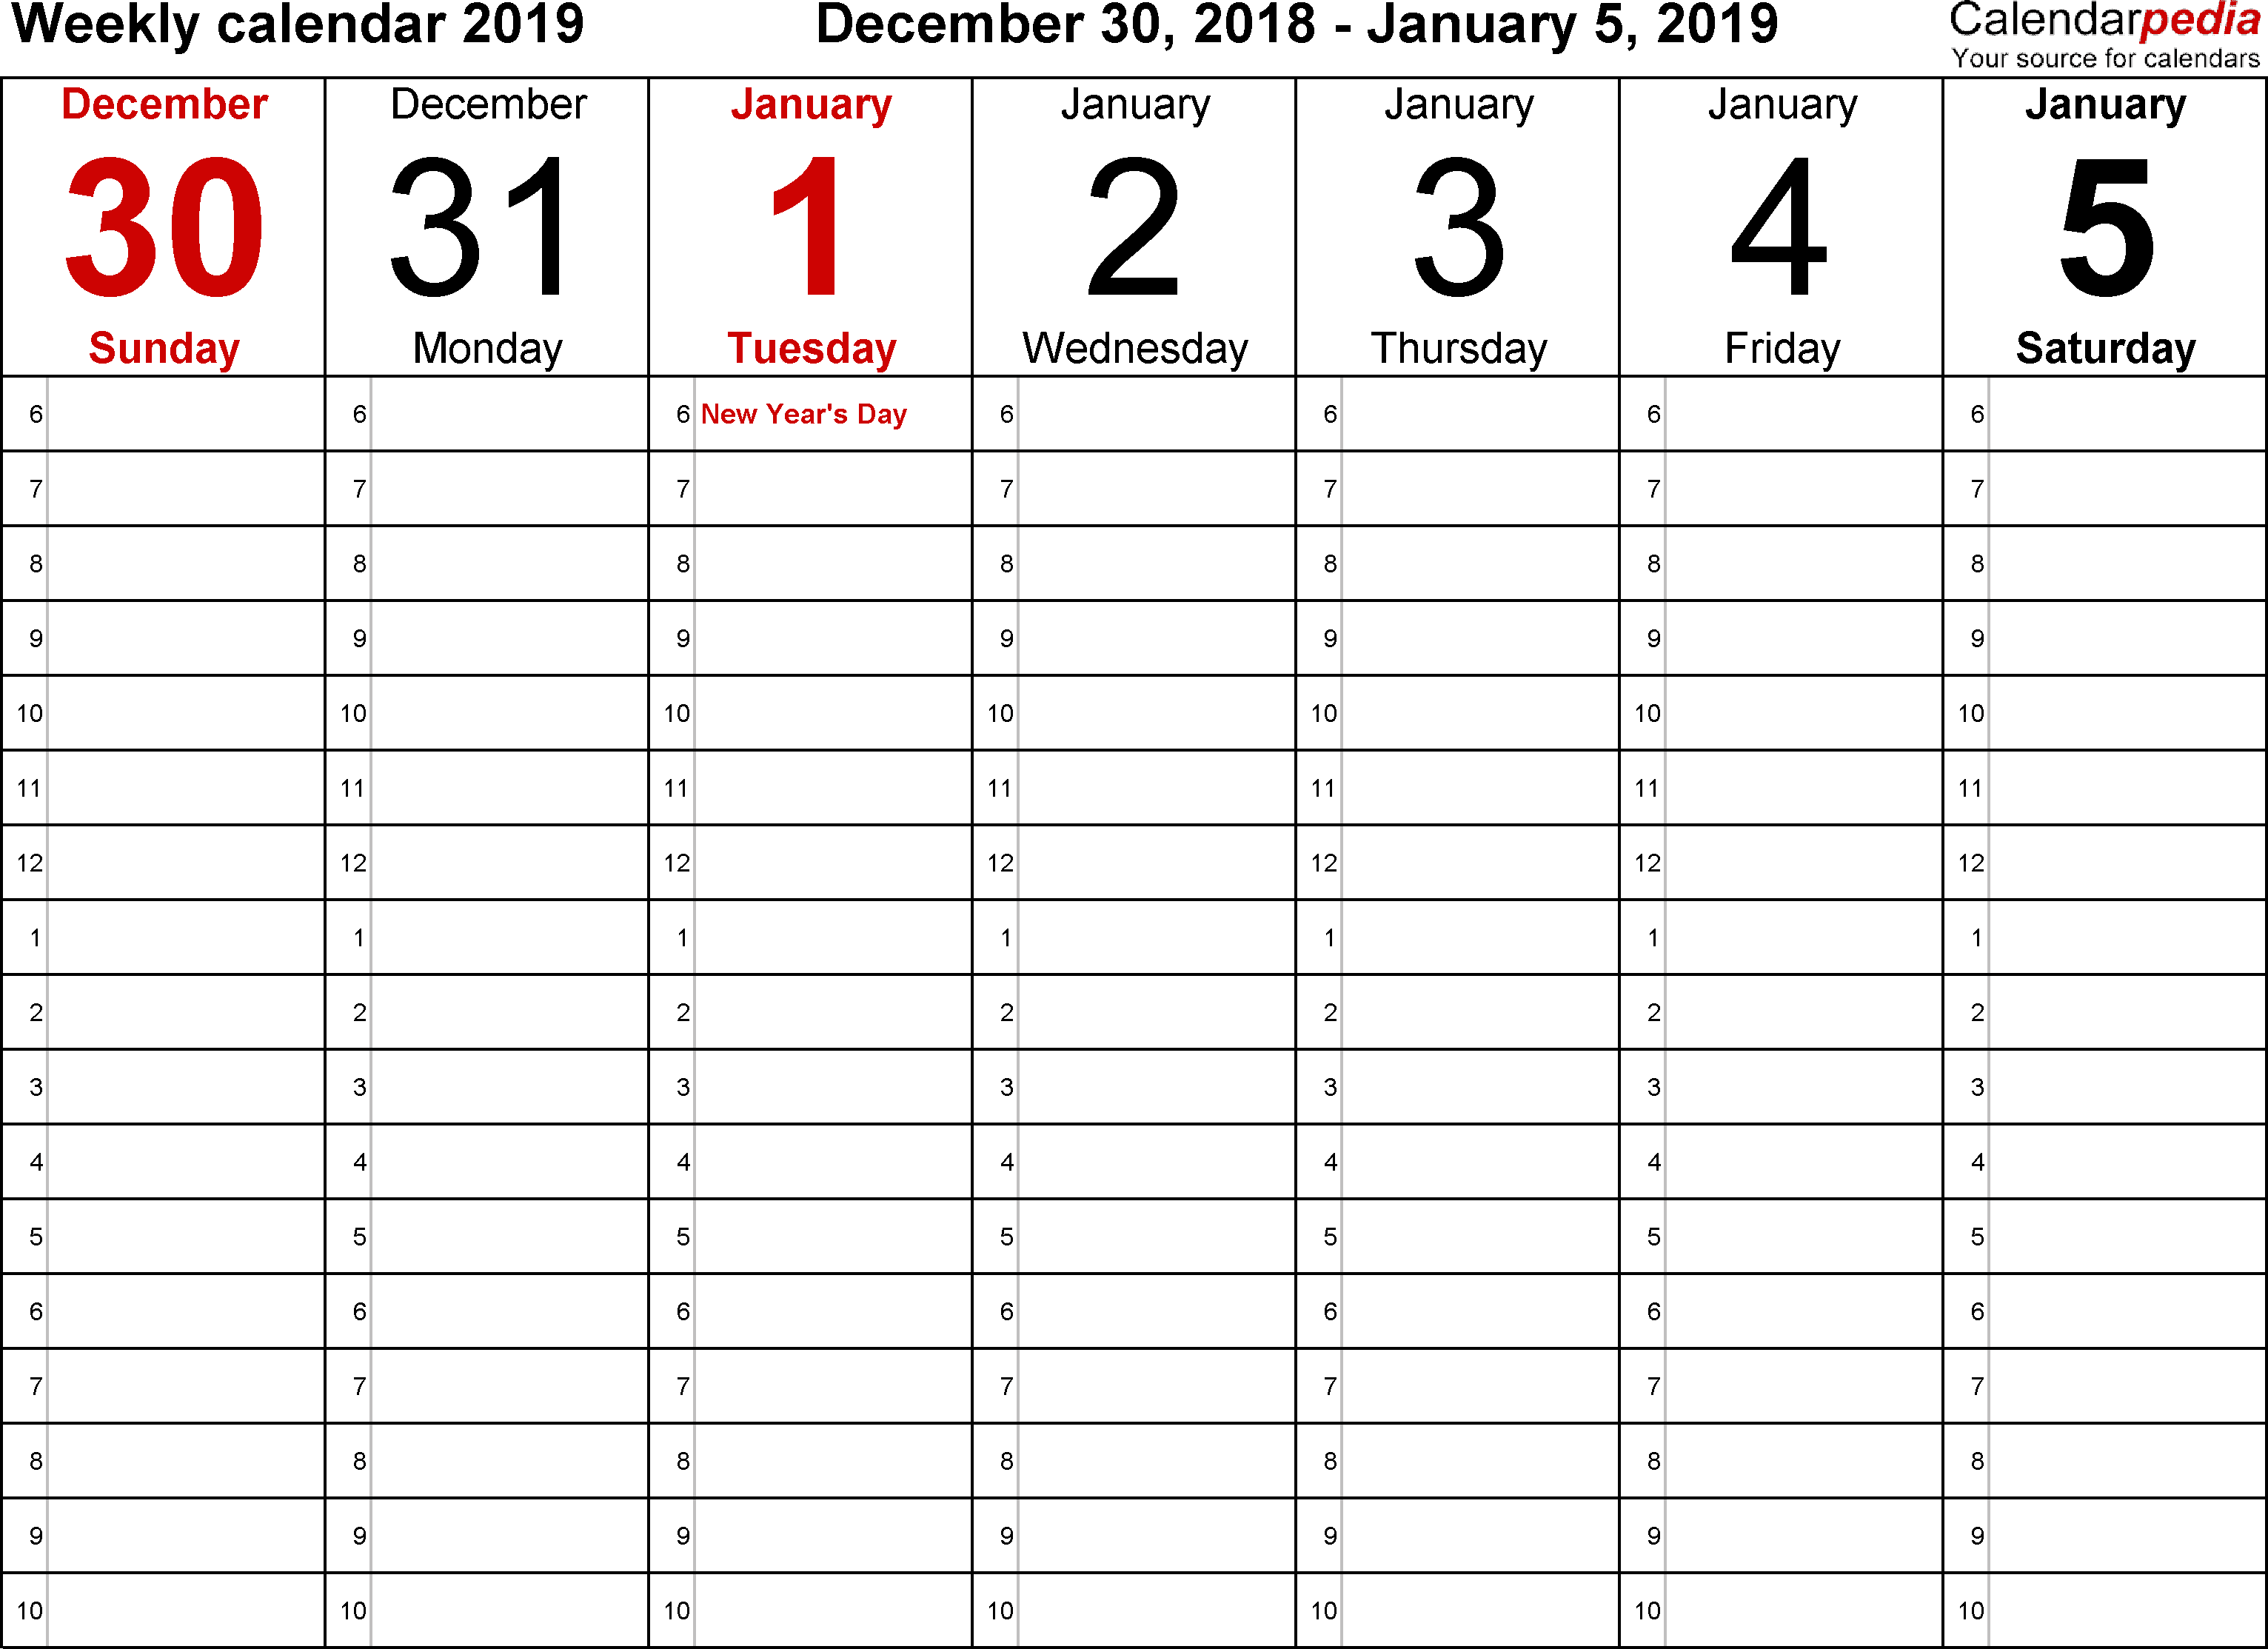 Weekly calendar 2019: template for PDF version 1, landscape, 53 pages, time management layout (18 hours per day, 6am to 11.59pm)